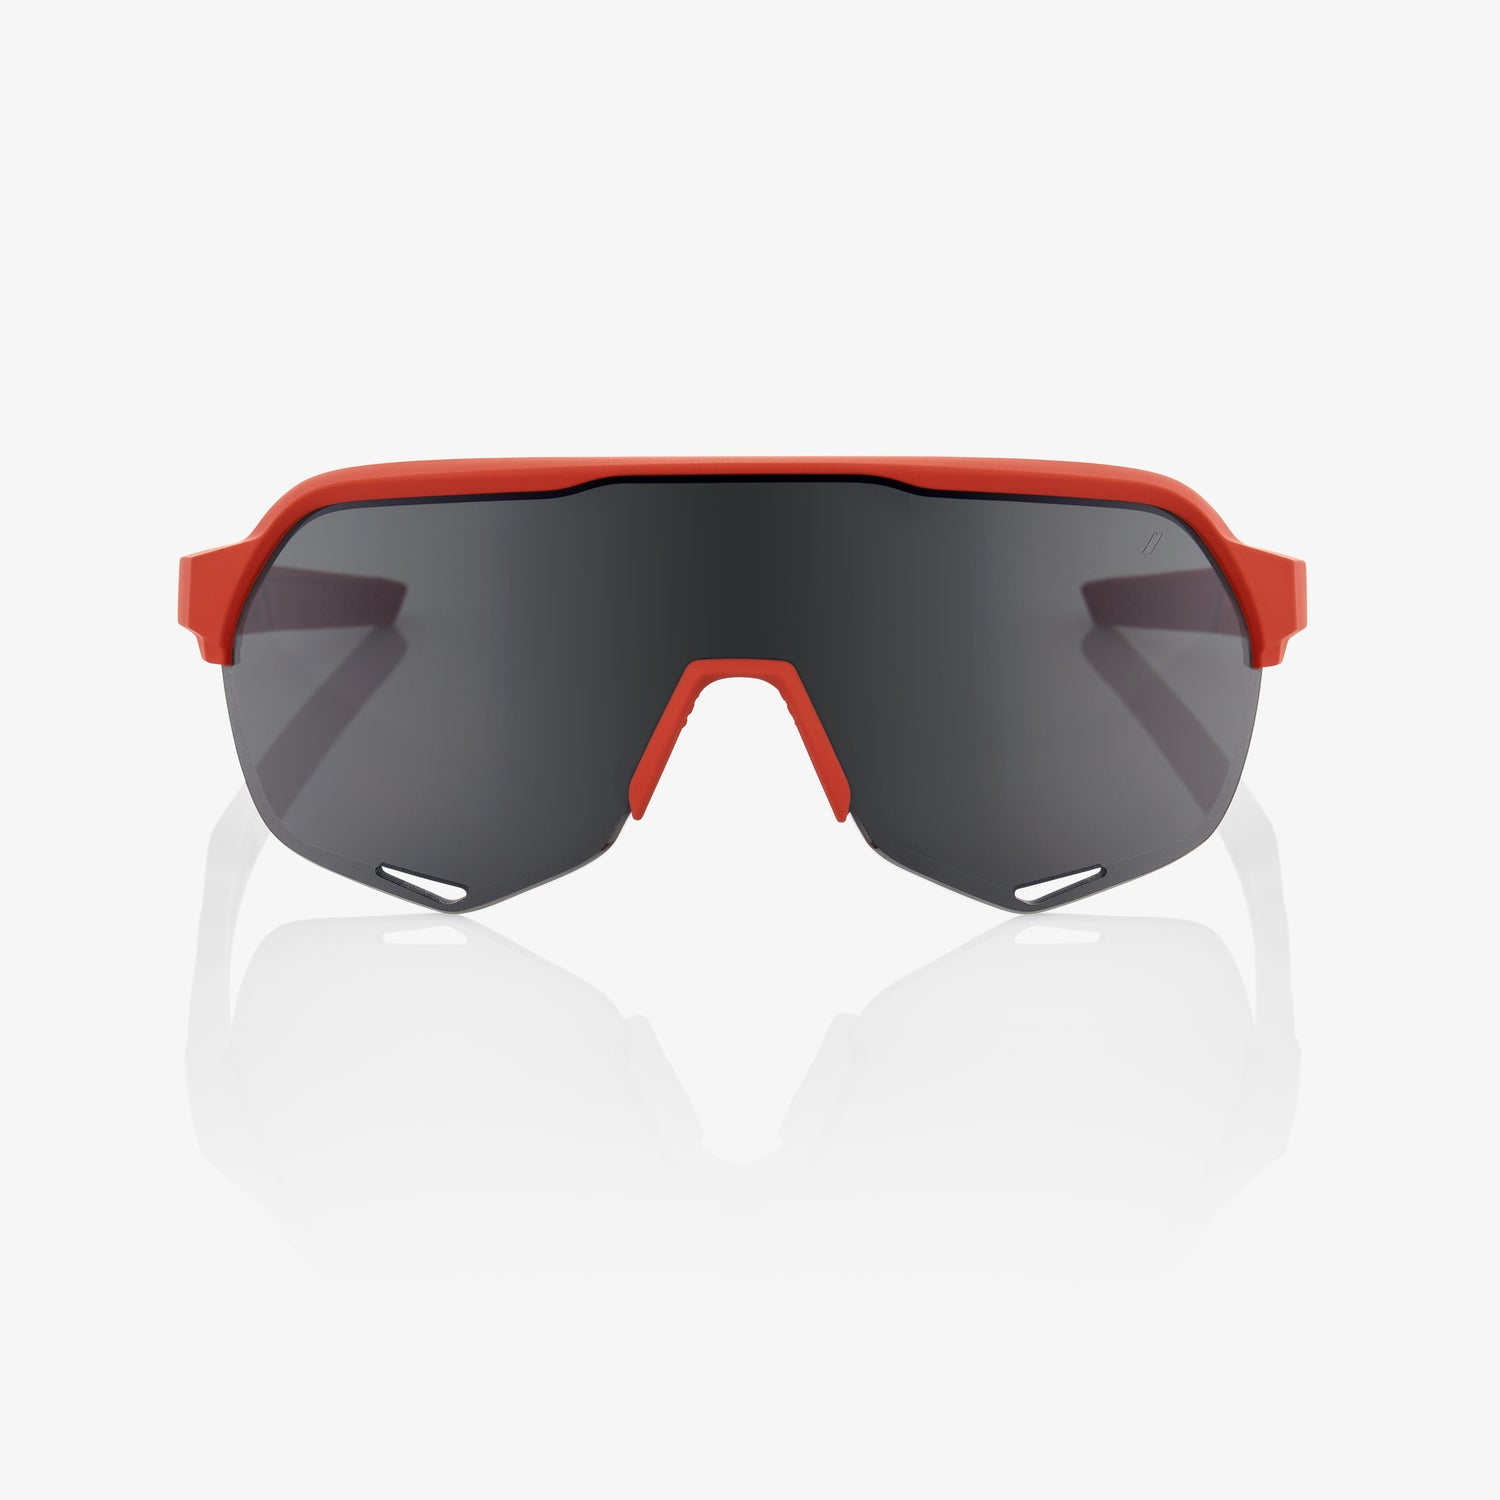 S2 - Soft Tact Coral - Smoke Lens